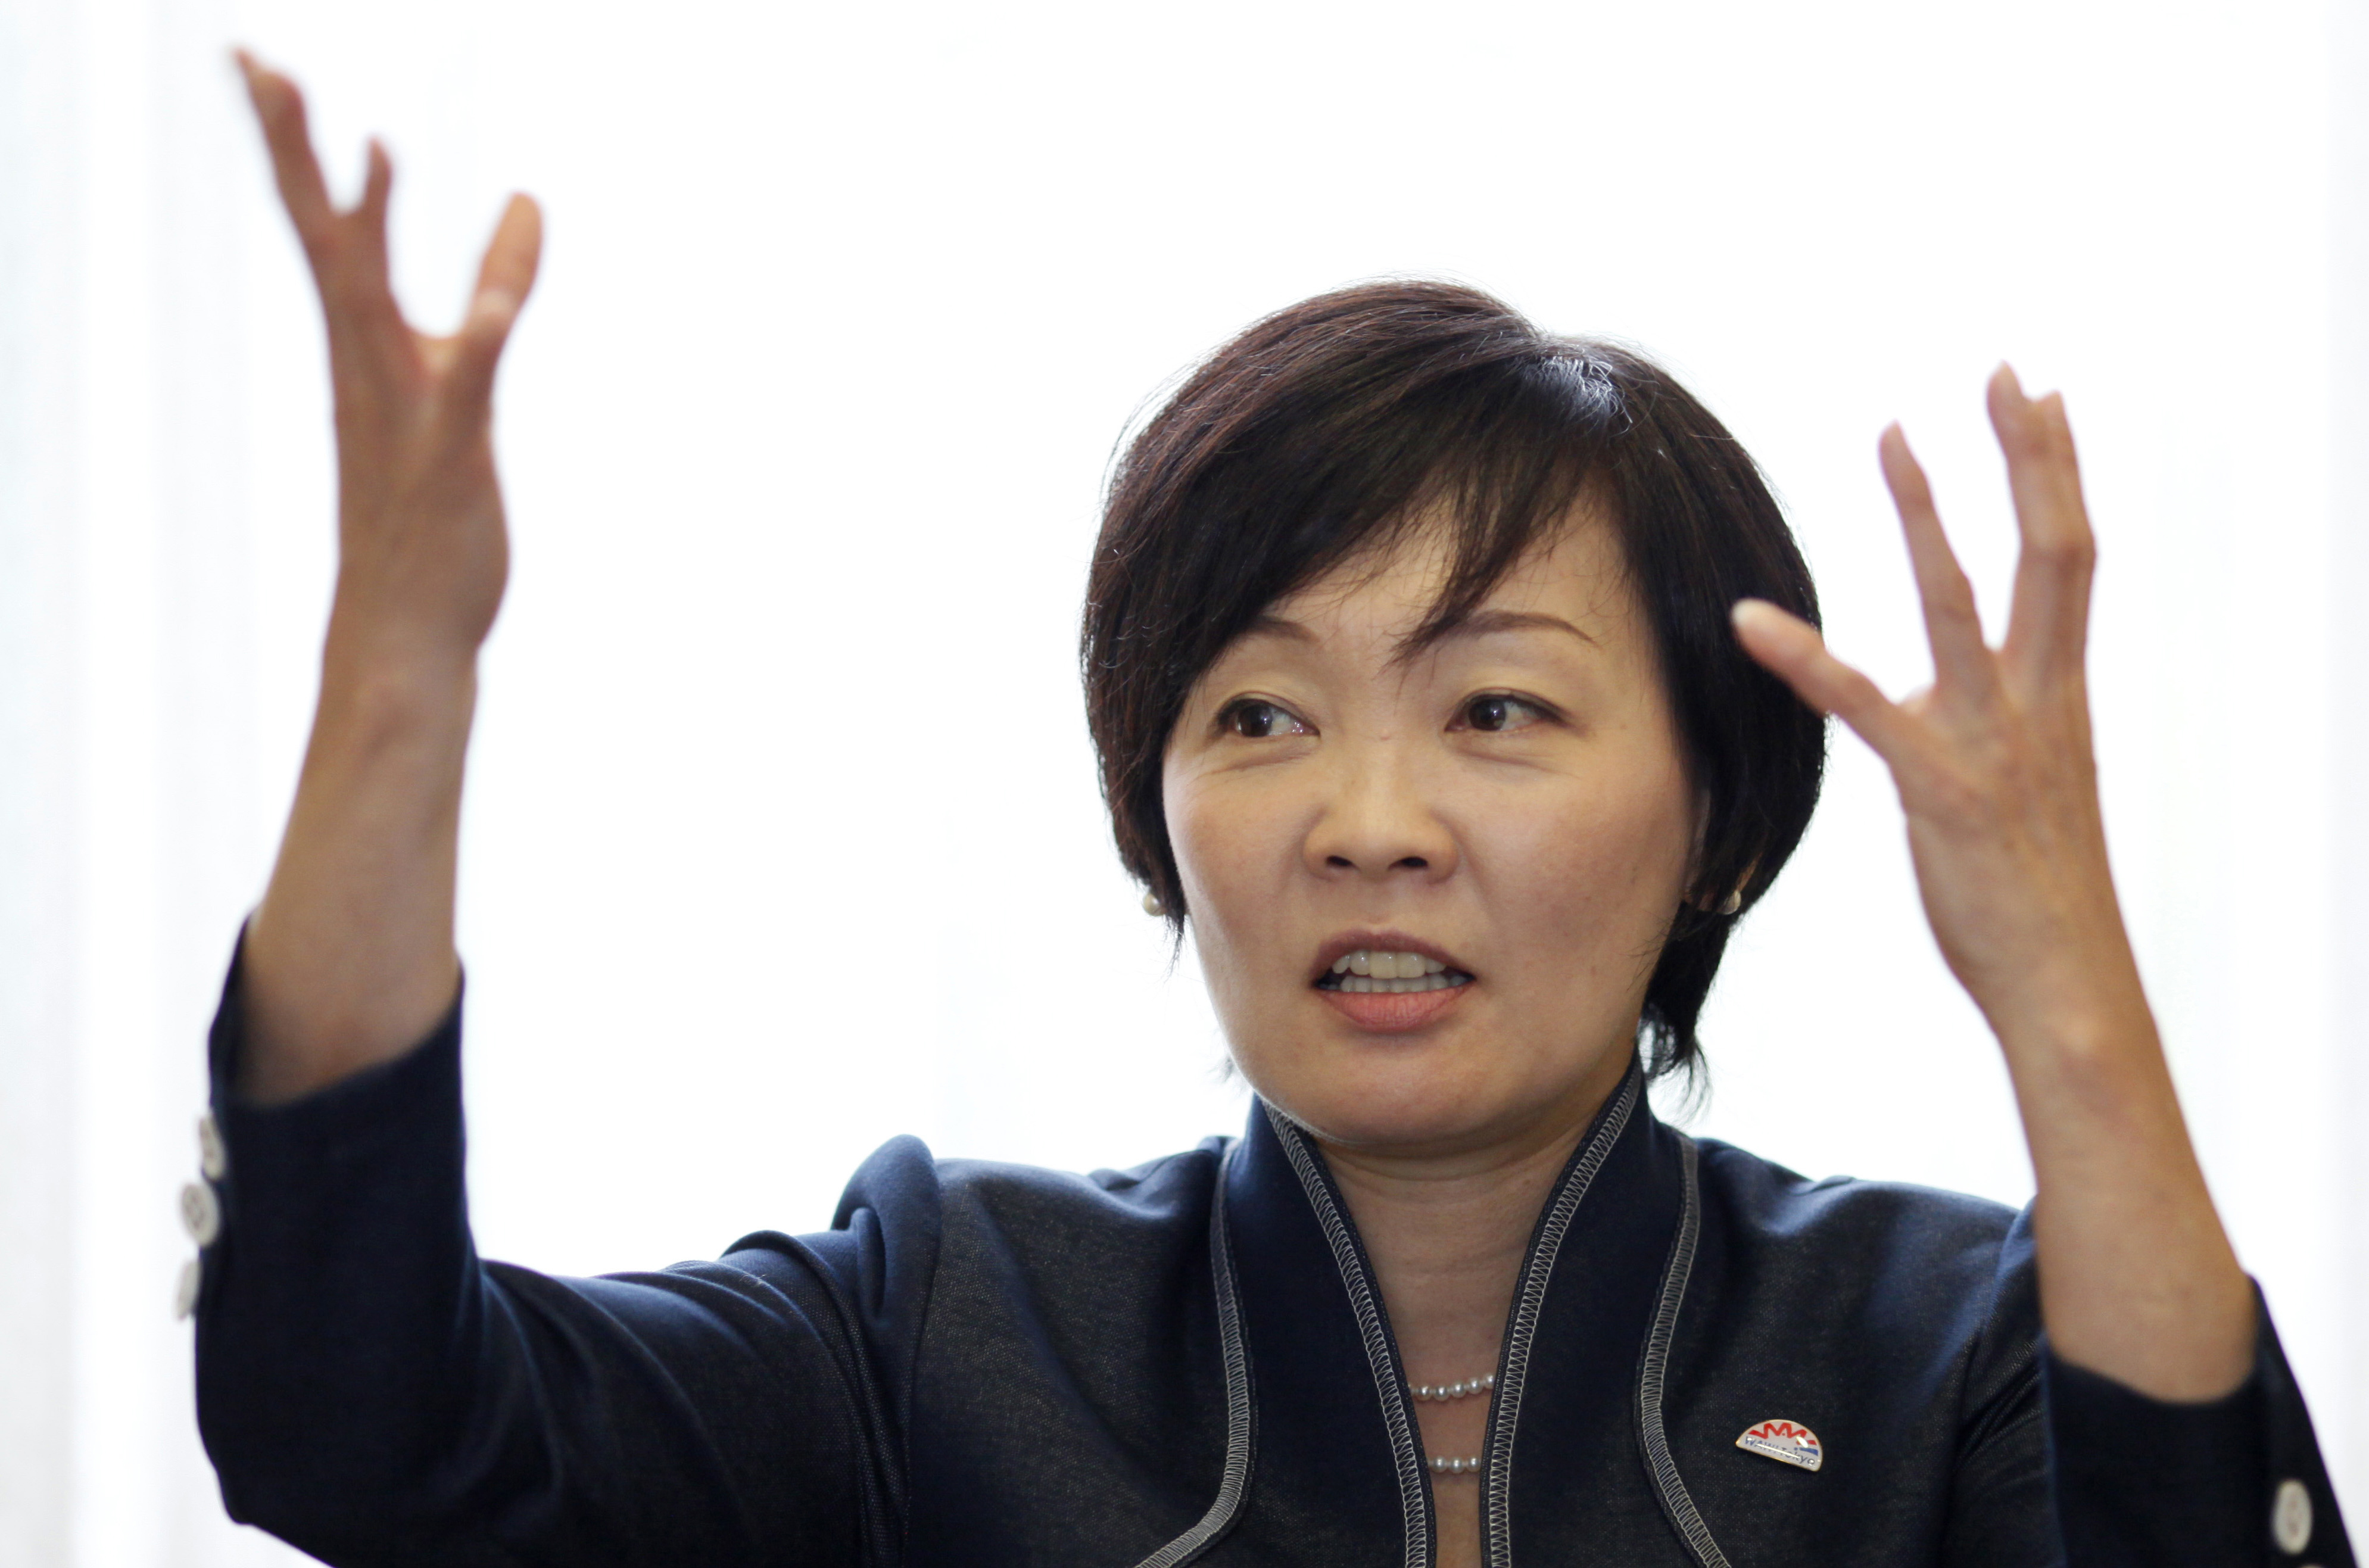 Akie Abe, wife of Japanese Prime Minister Shinzo Abe, speaks during an interview in Tokyo on Sept. 4, 2014